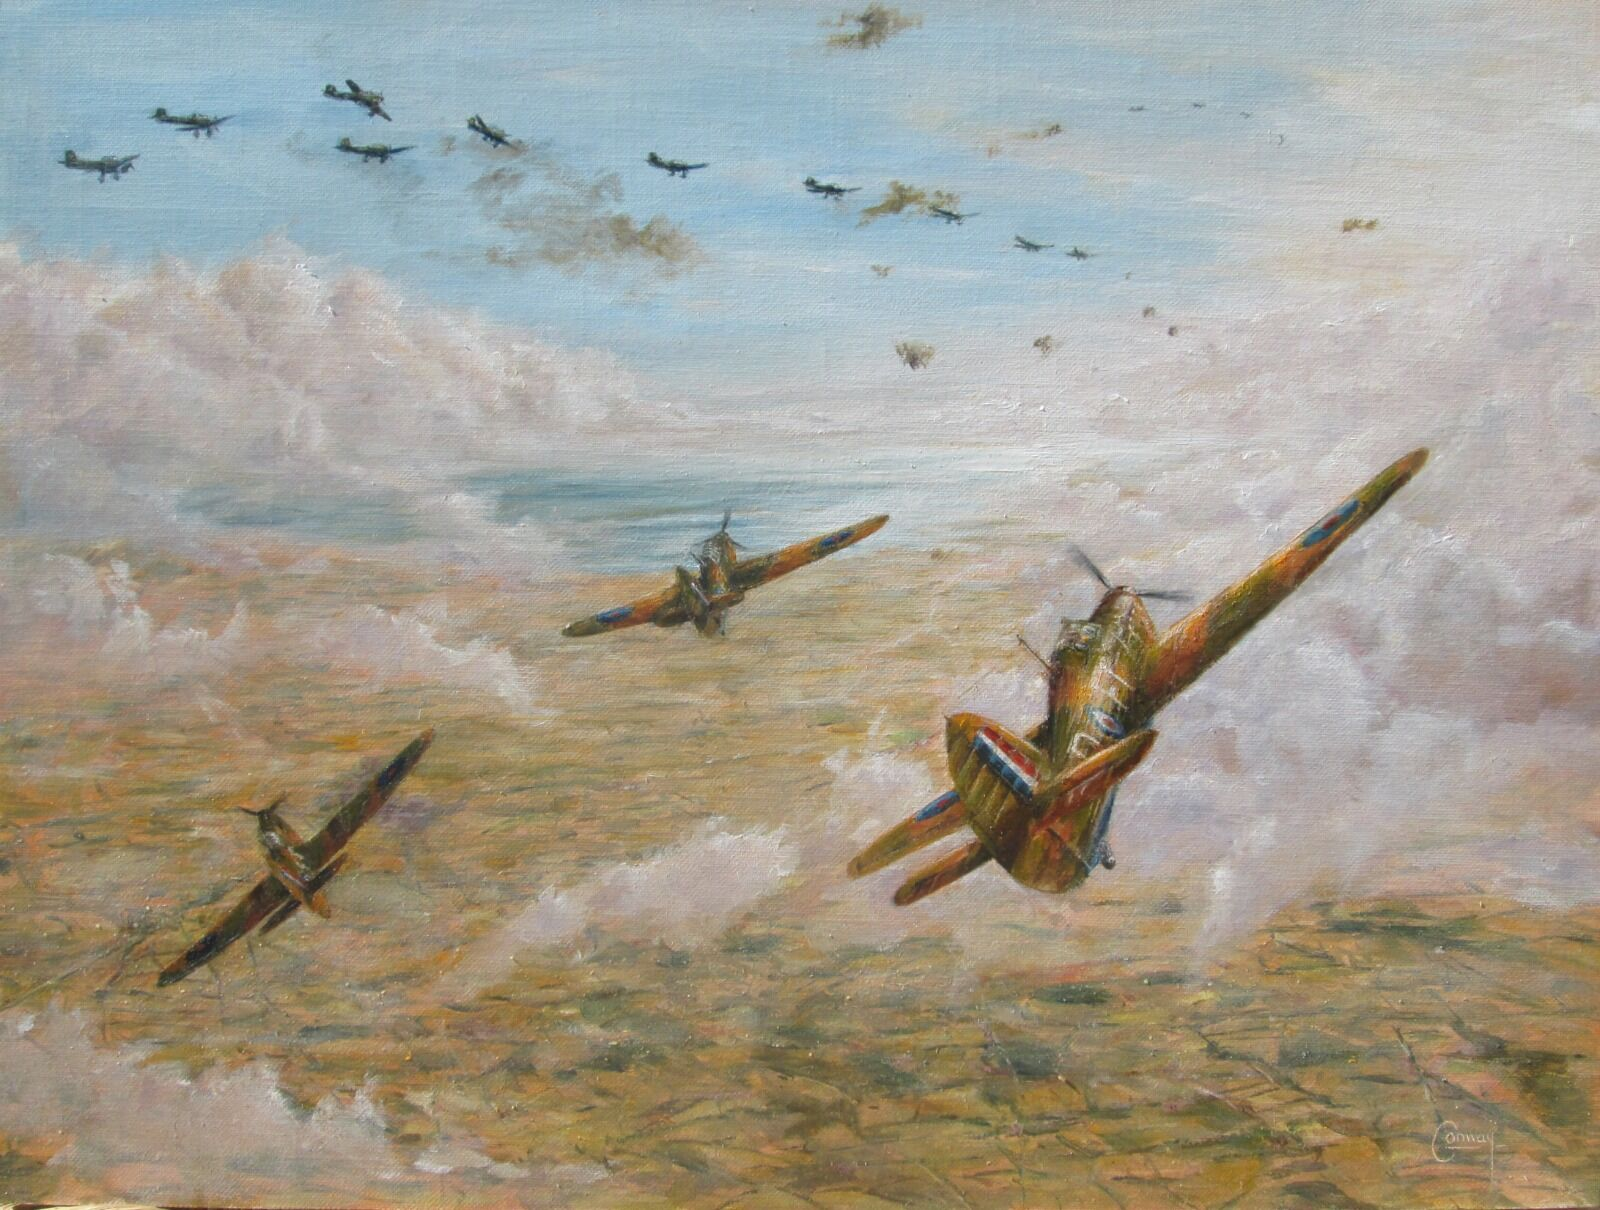 'The Fighting Cocks Attack'- Hurricanes of No. 43 Squadron